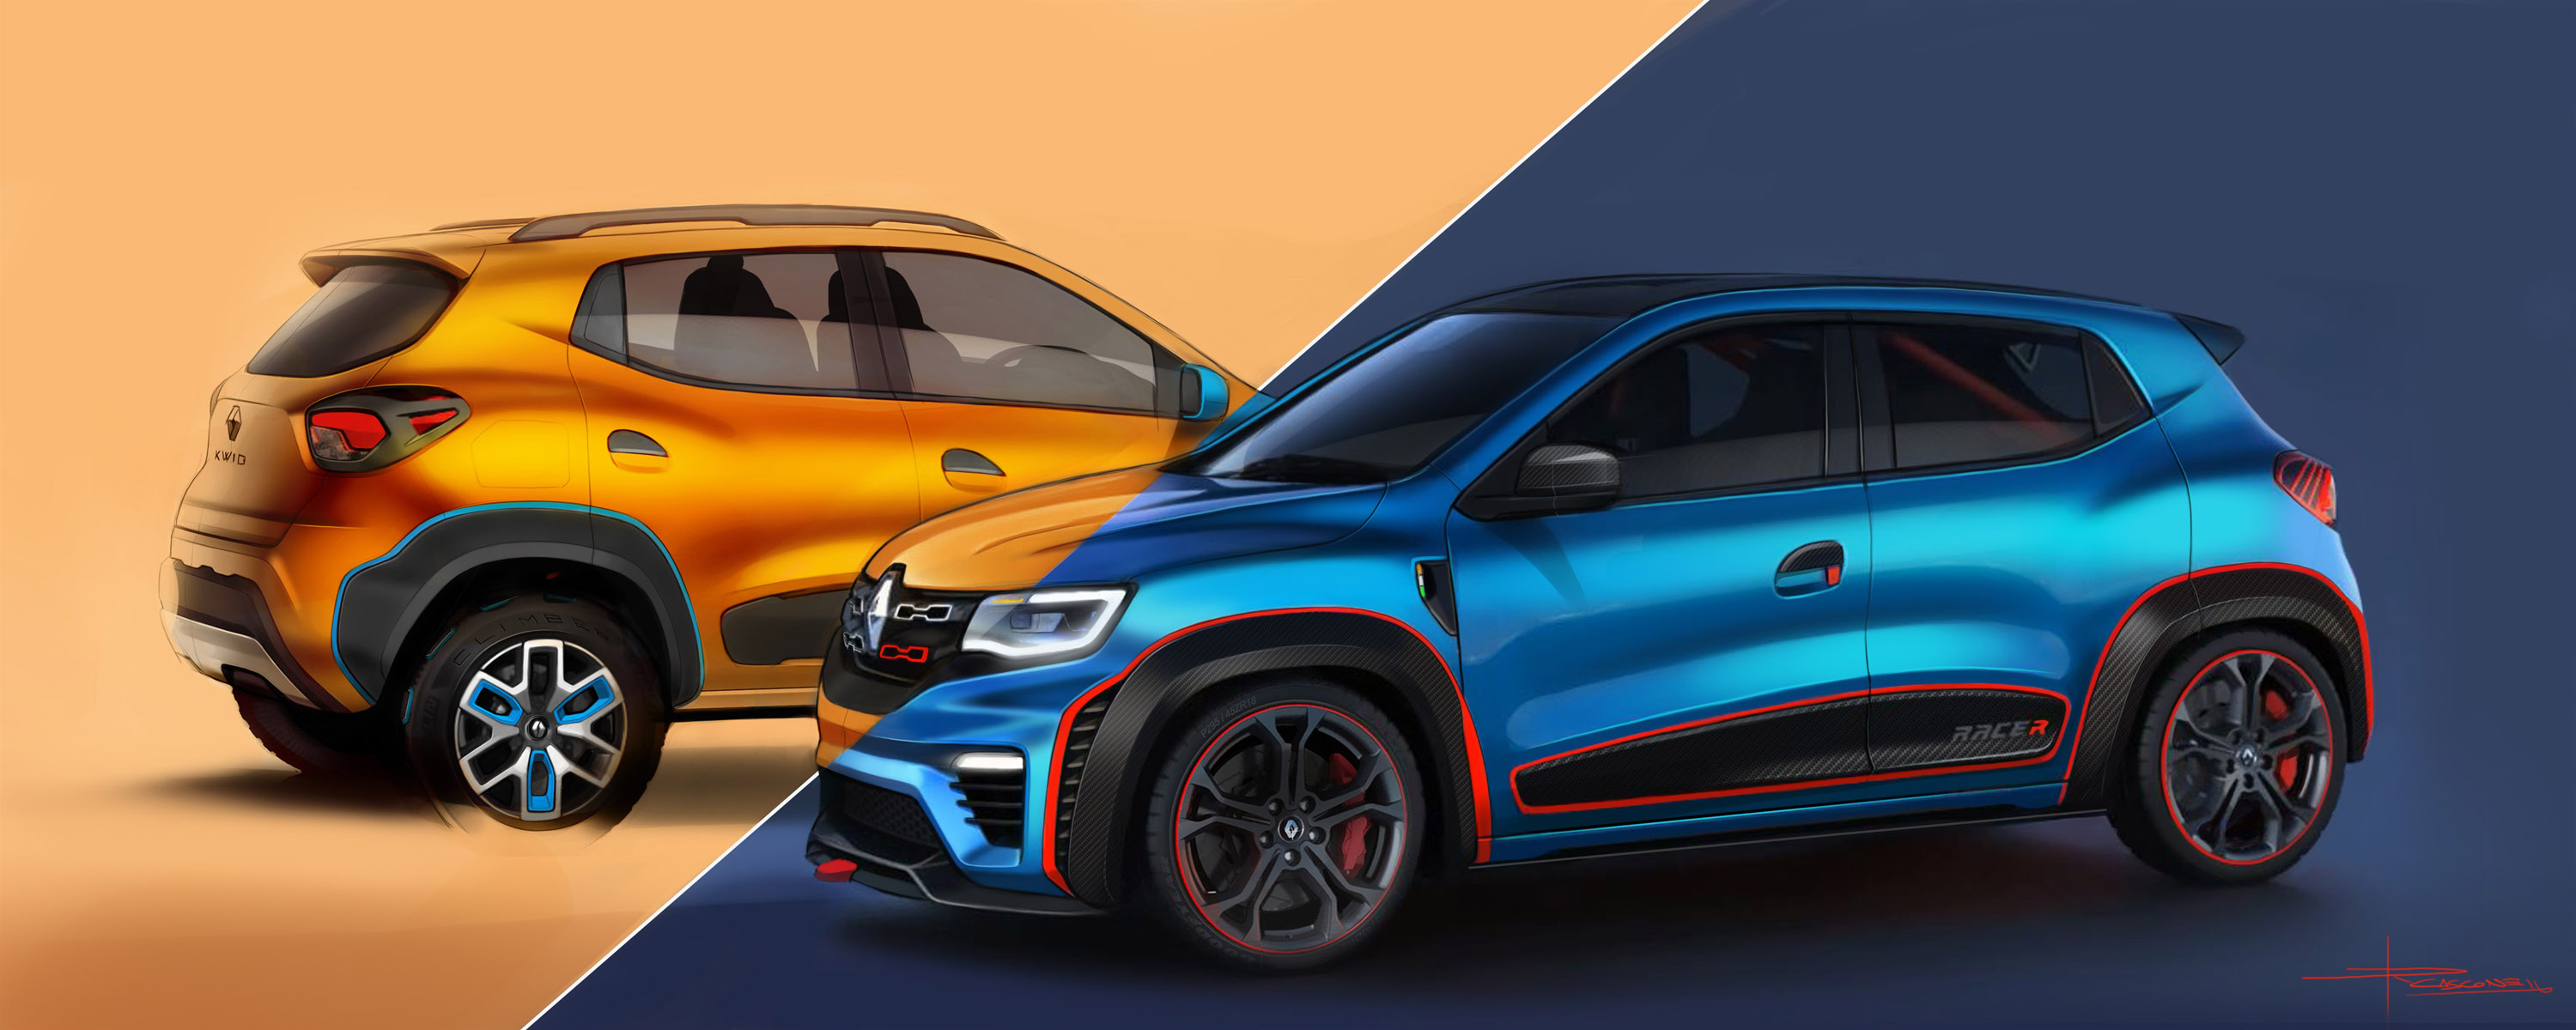 Renault Kwid Racer And Renault Kwid Climber Premiered At New Delhi Auto Show